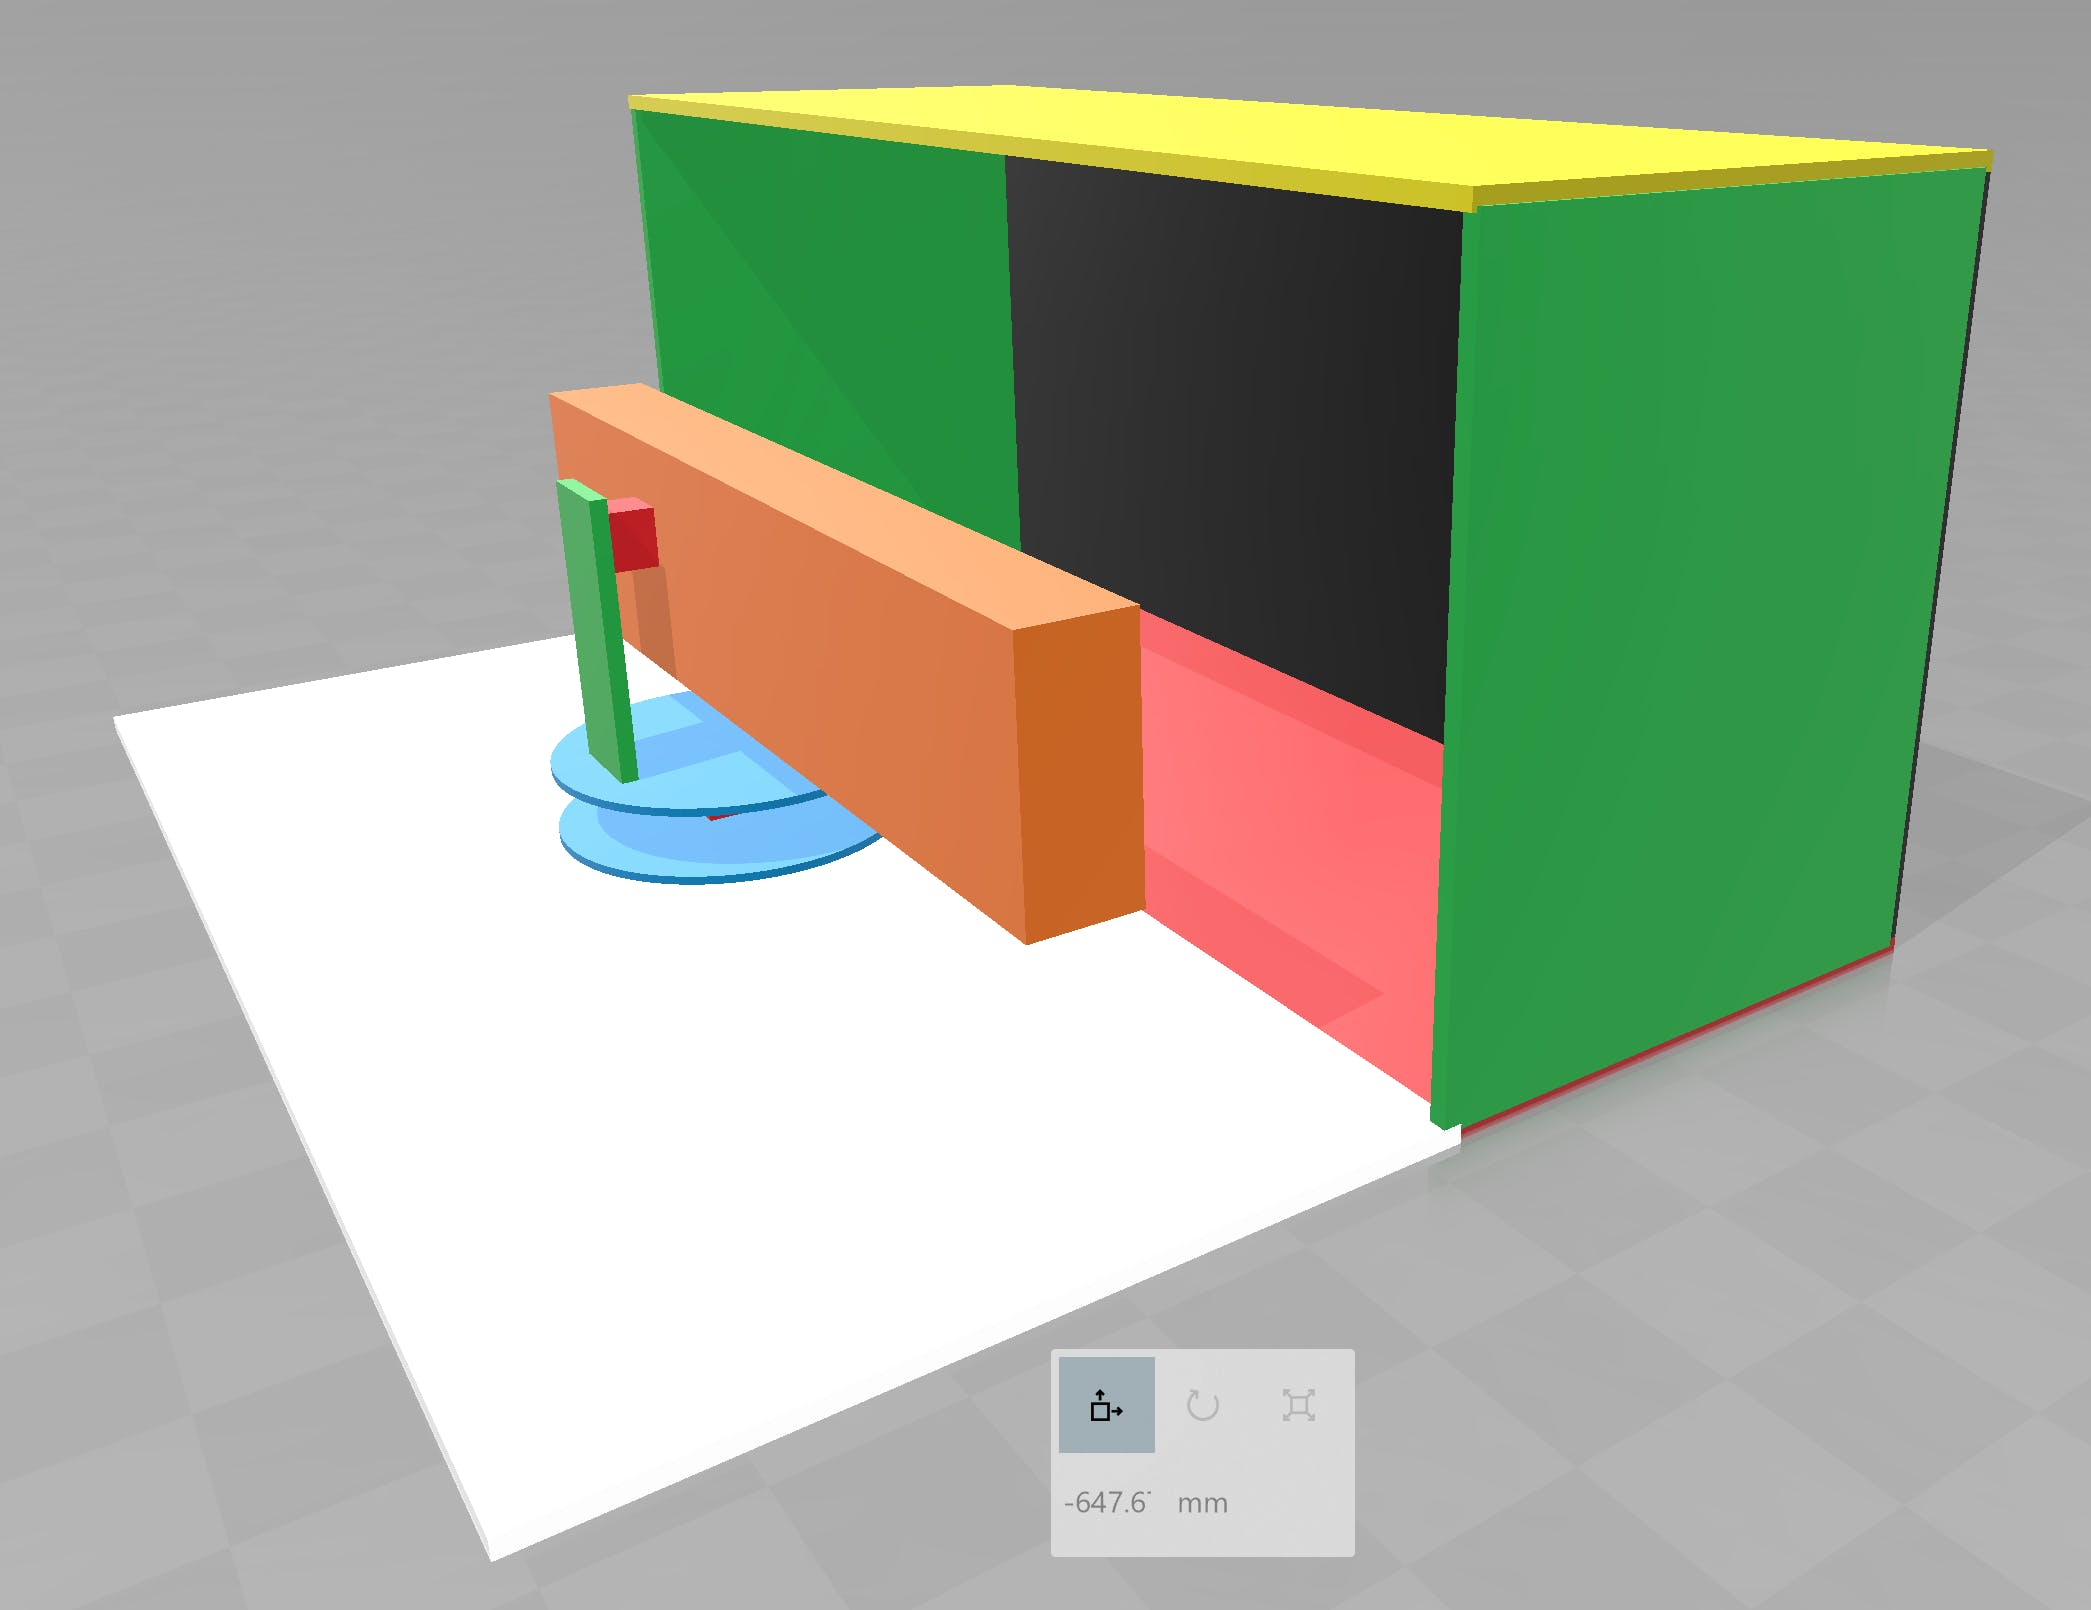 Box Dimensions and Together